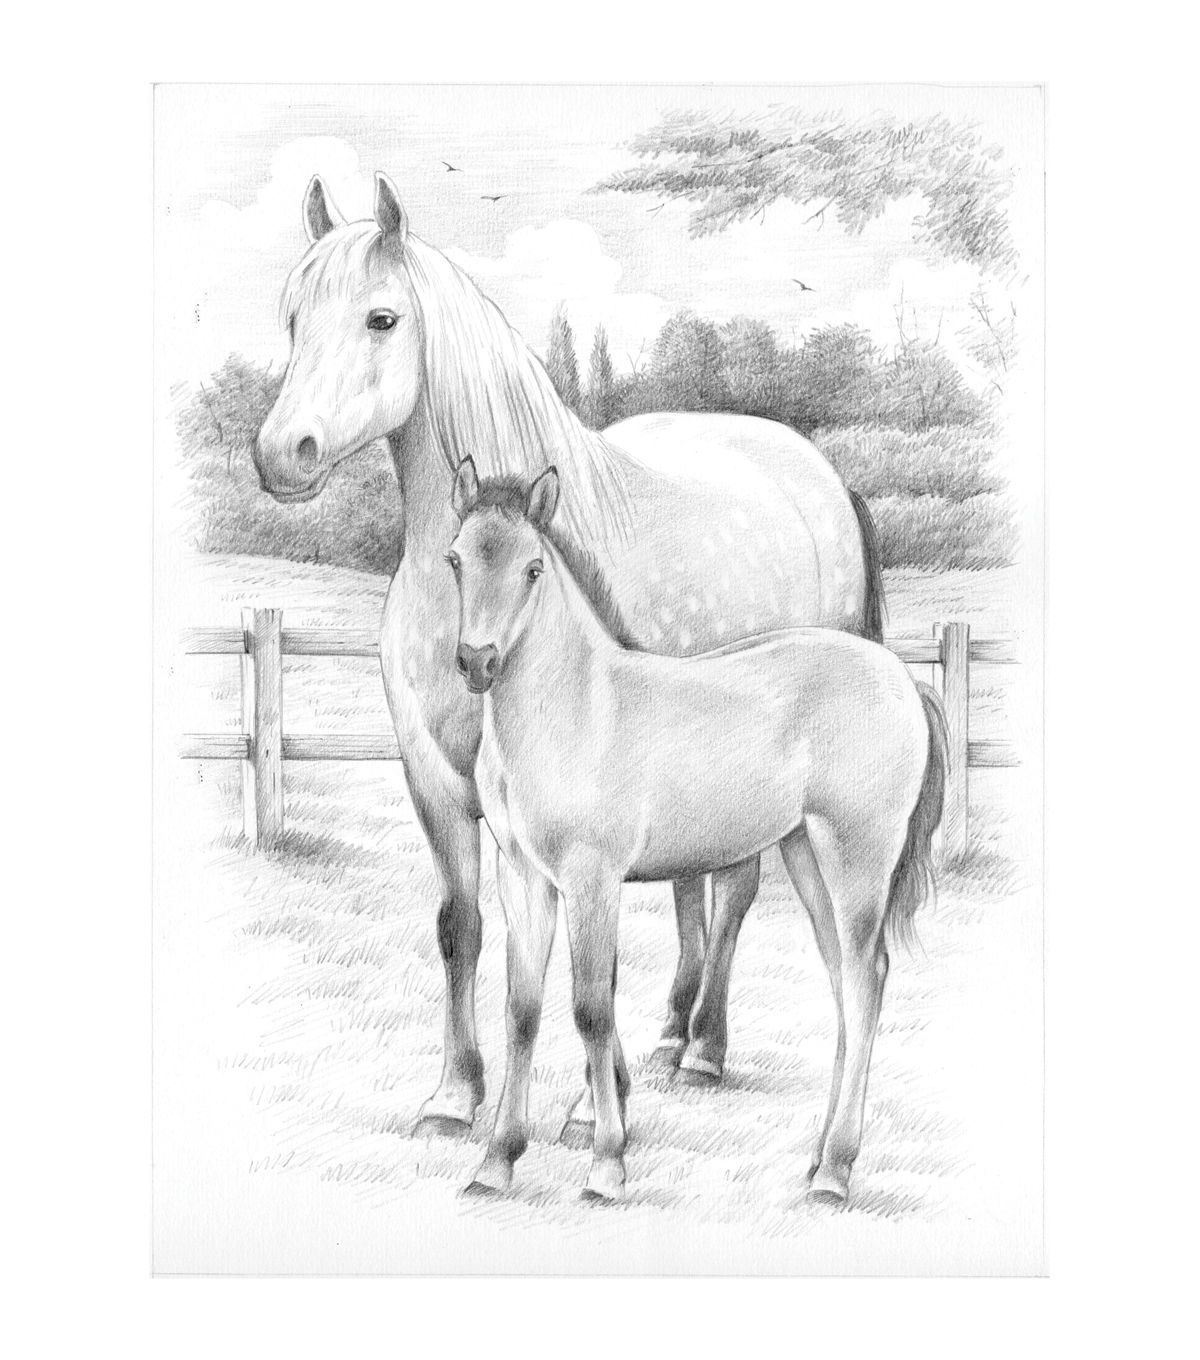 Sketching By Number Kit 8 X11 3 4 Horse And Foal Joann Horse Coloring Pages Horses Horse Drawings [ 1360 x 1200 Pixel ]